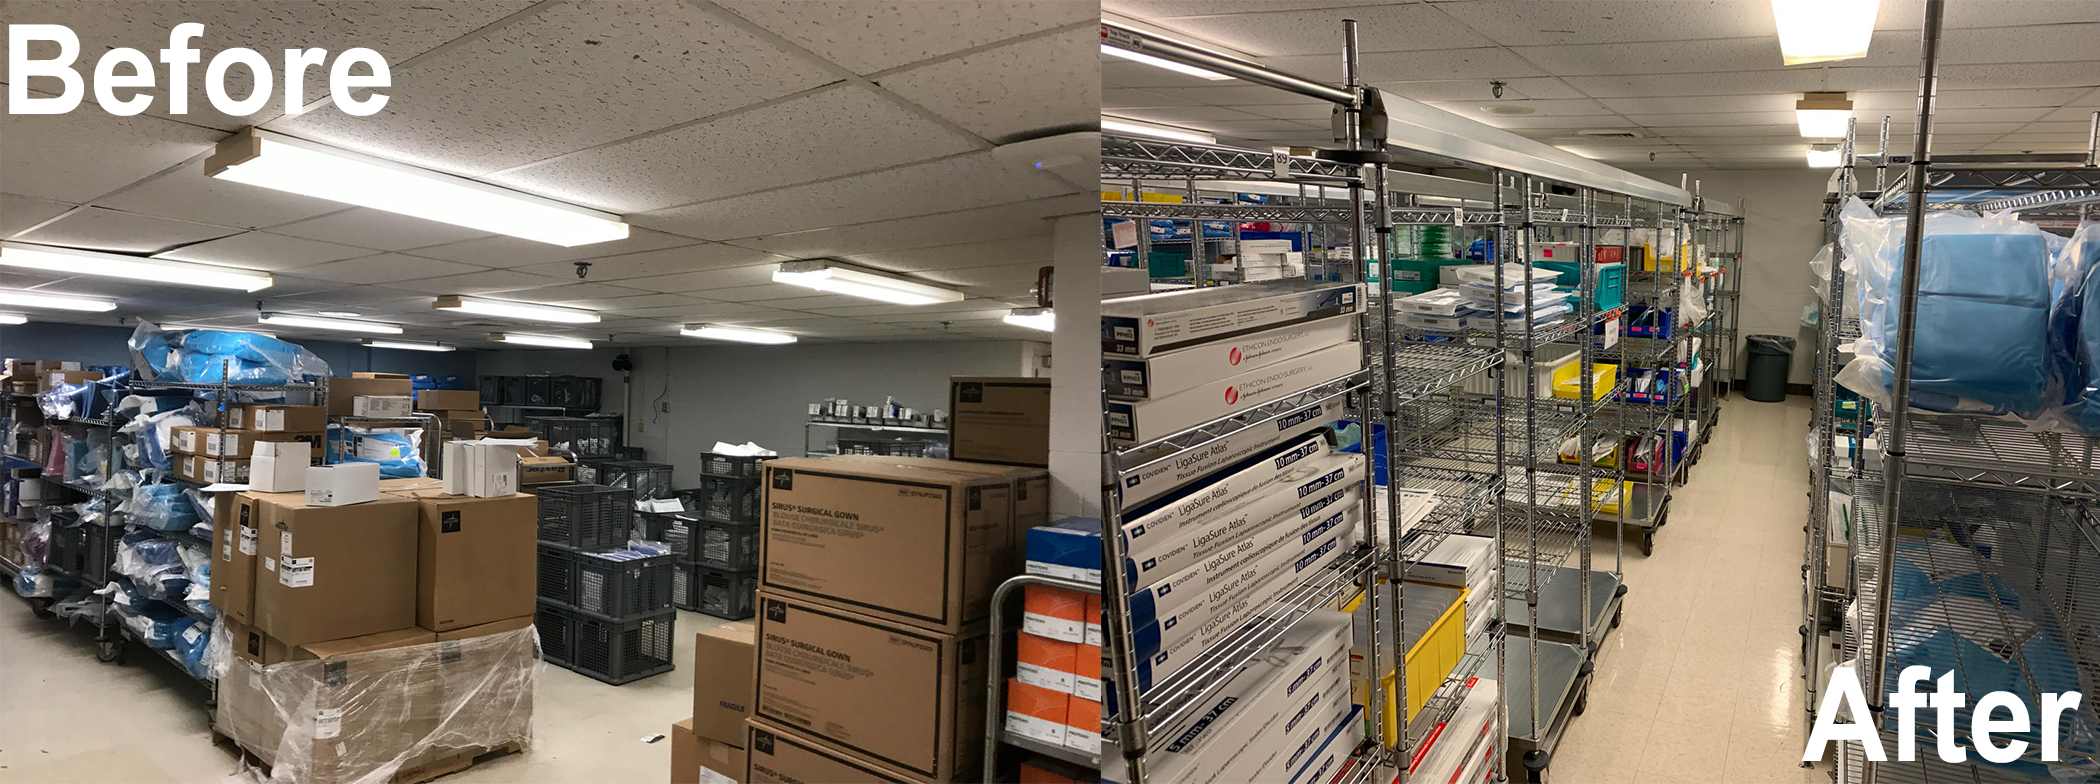 before and after lean supply management